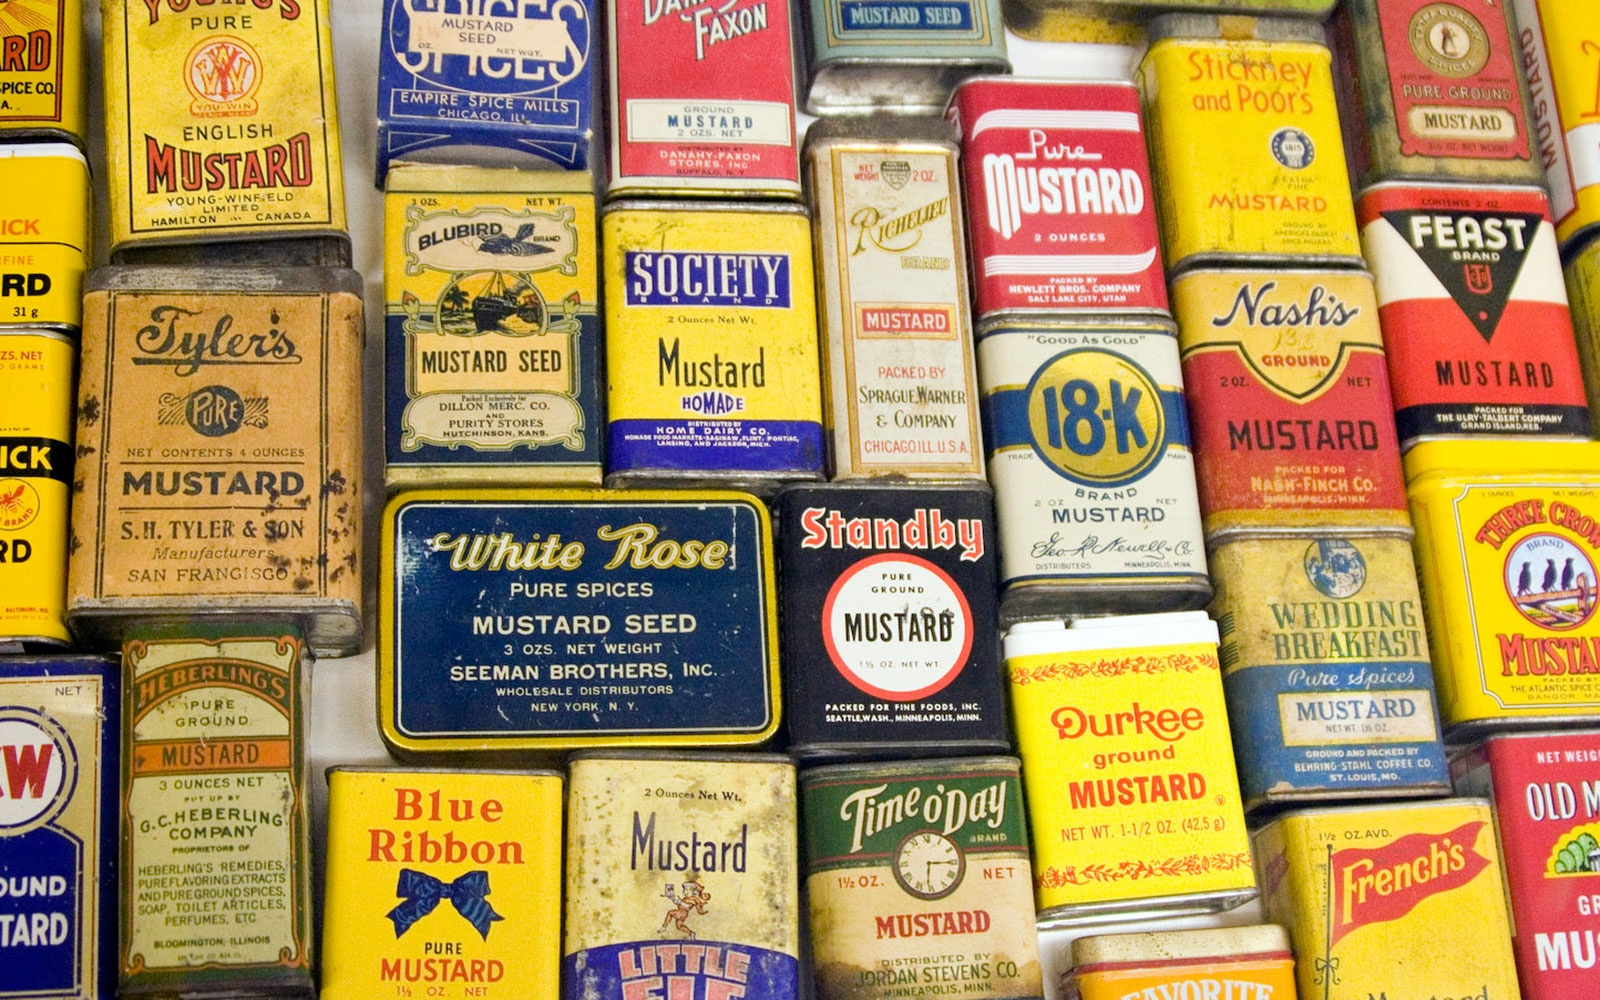 National Mustard Museum in Middleton, Wisconsin